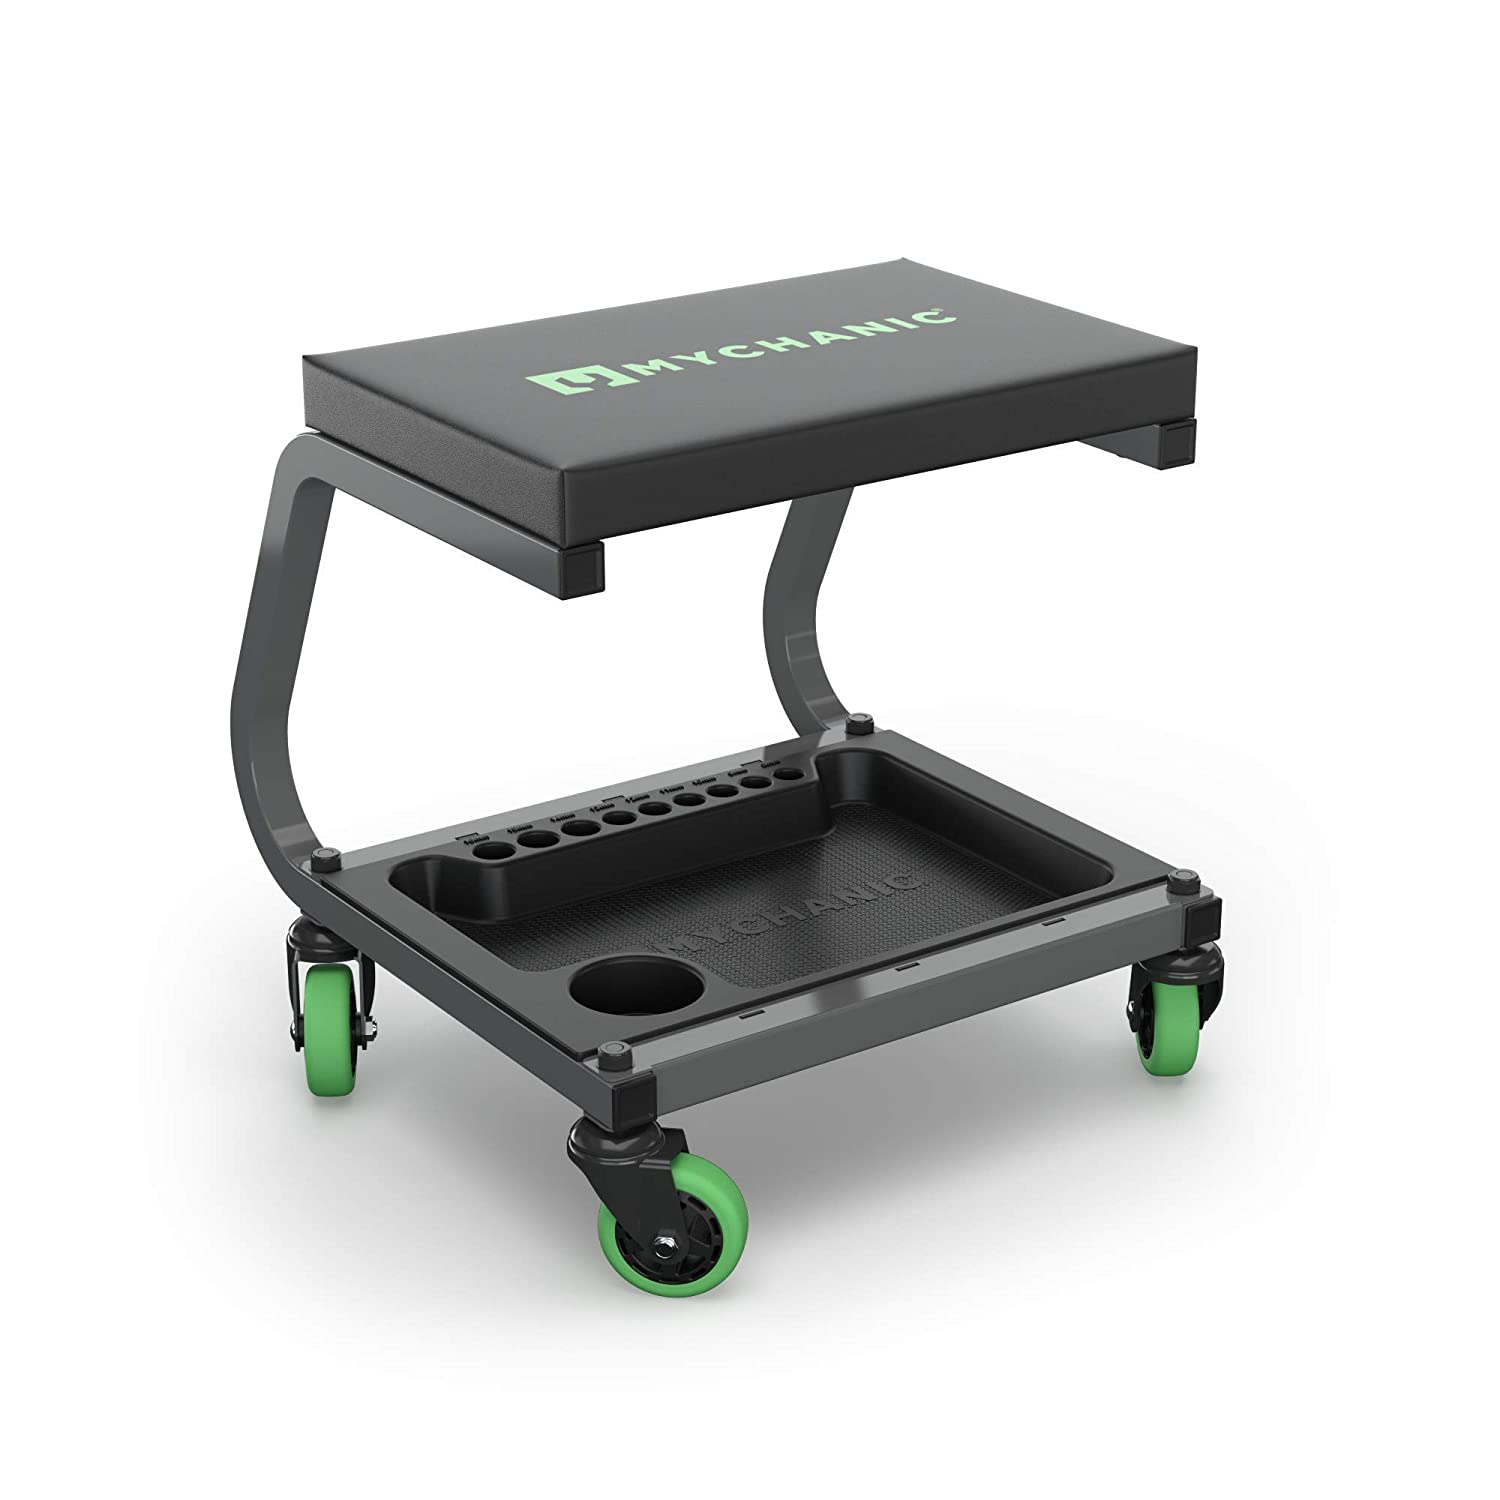 Powder Coated Steel Frame Tool Tray with Socket Organizer Padded Seat 350 Lb Capacity Rolling Garage Stool MYCHANIC Fastback Shop Stool 3-Inch Casters